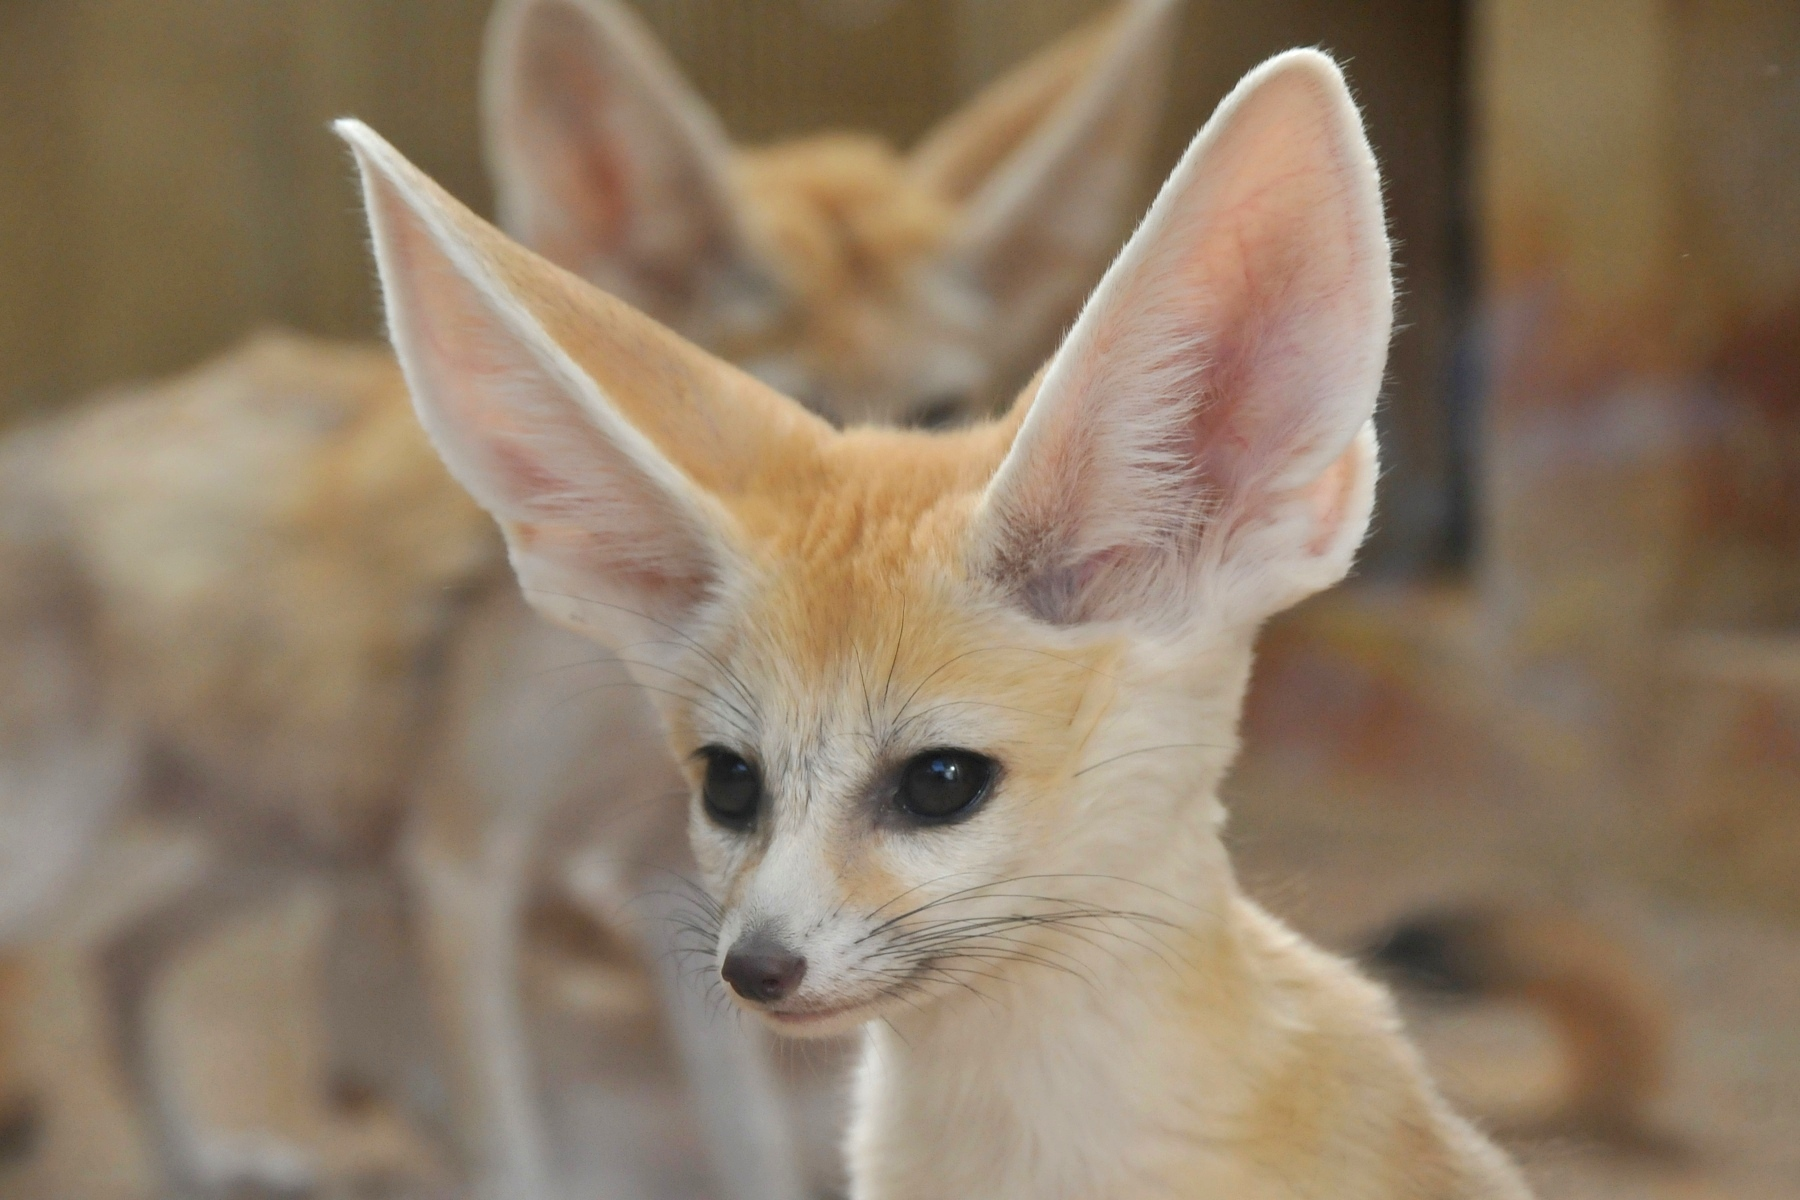 Animals Nature Emoji One also Fennec Fox cute ears cute baby Vulpes zerda in addition Panda Clipart furthermore Teddy Bear Clipart as well Dinosaur. on baby bear tree